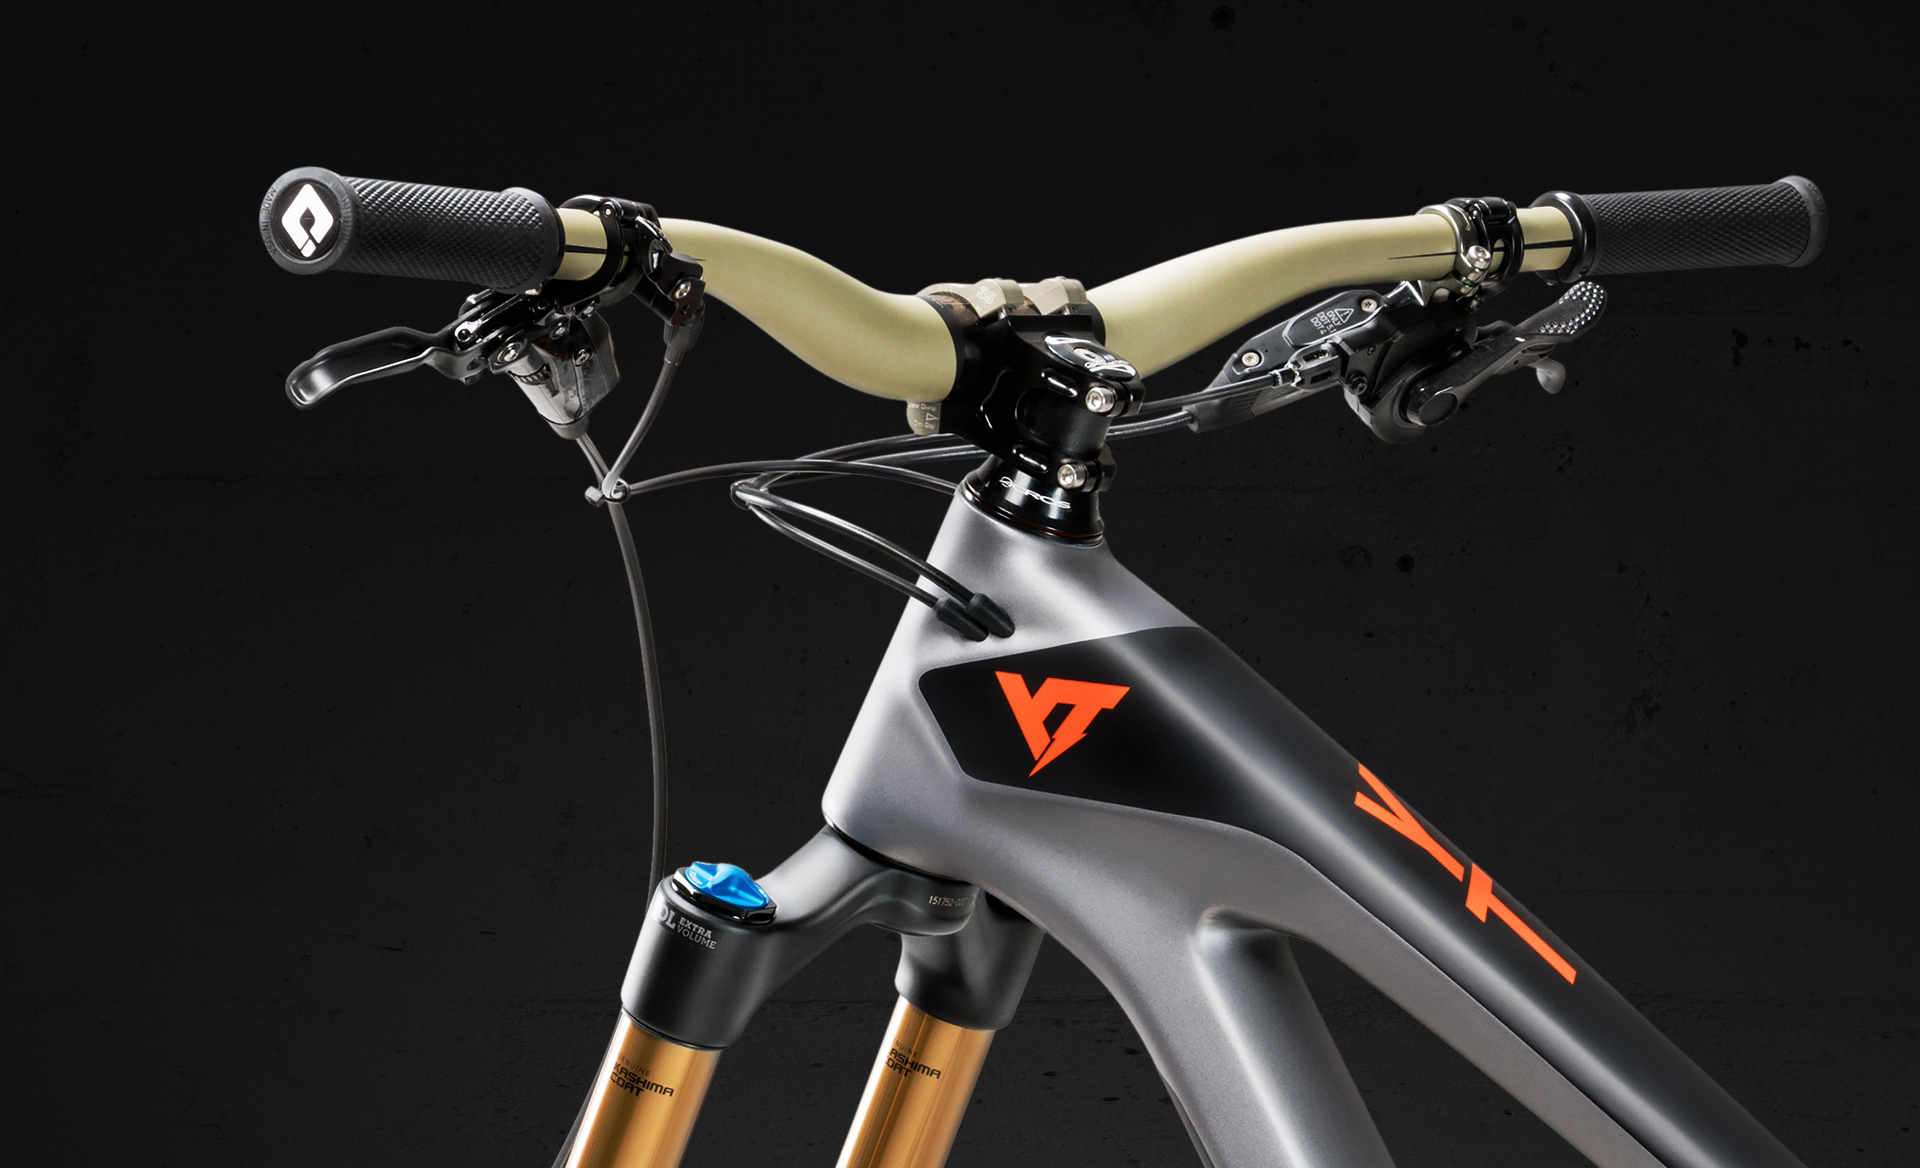 YT unveils two new Capras, including a 170mm travel 29er - MBR